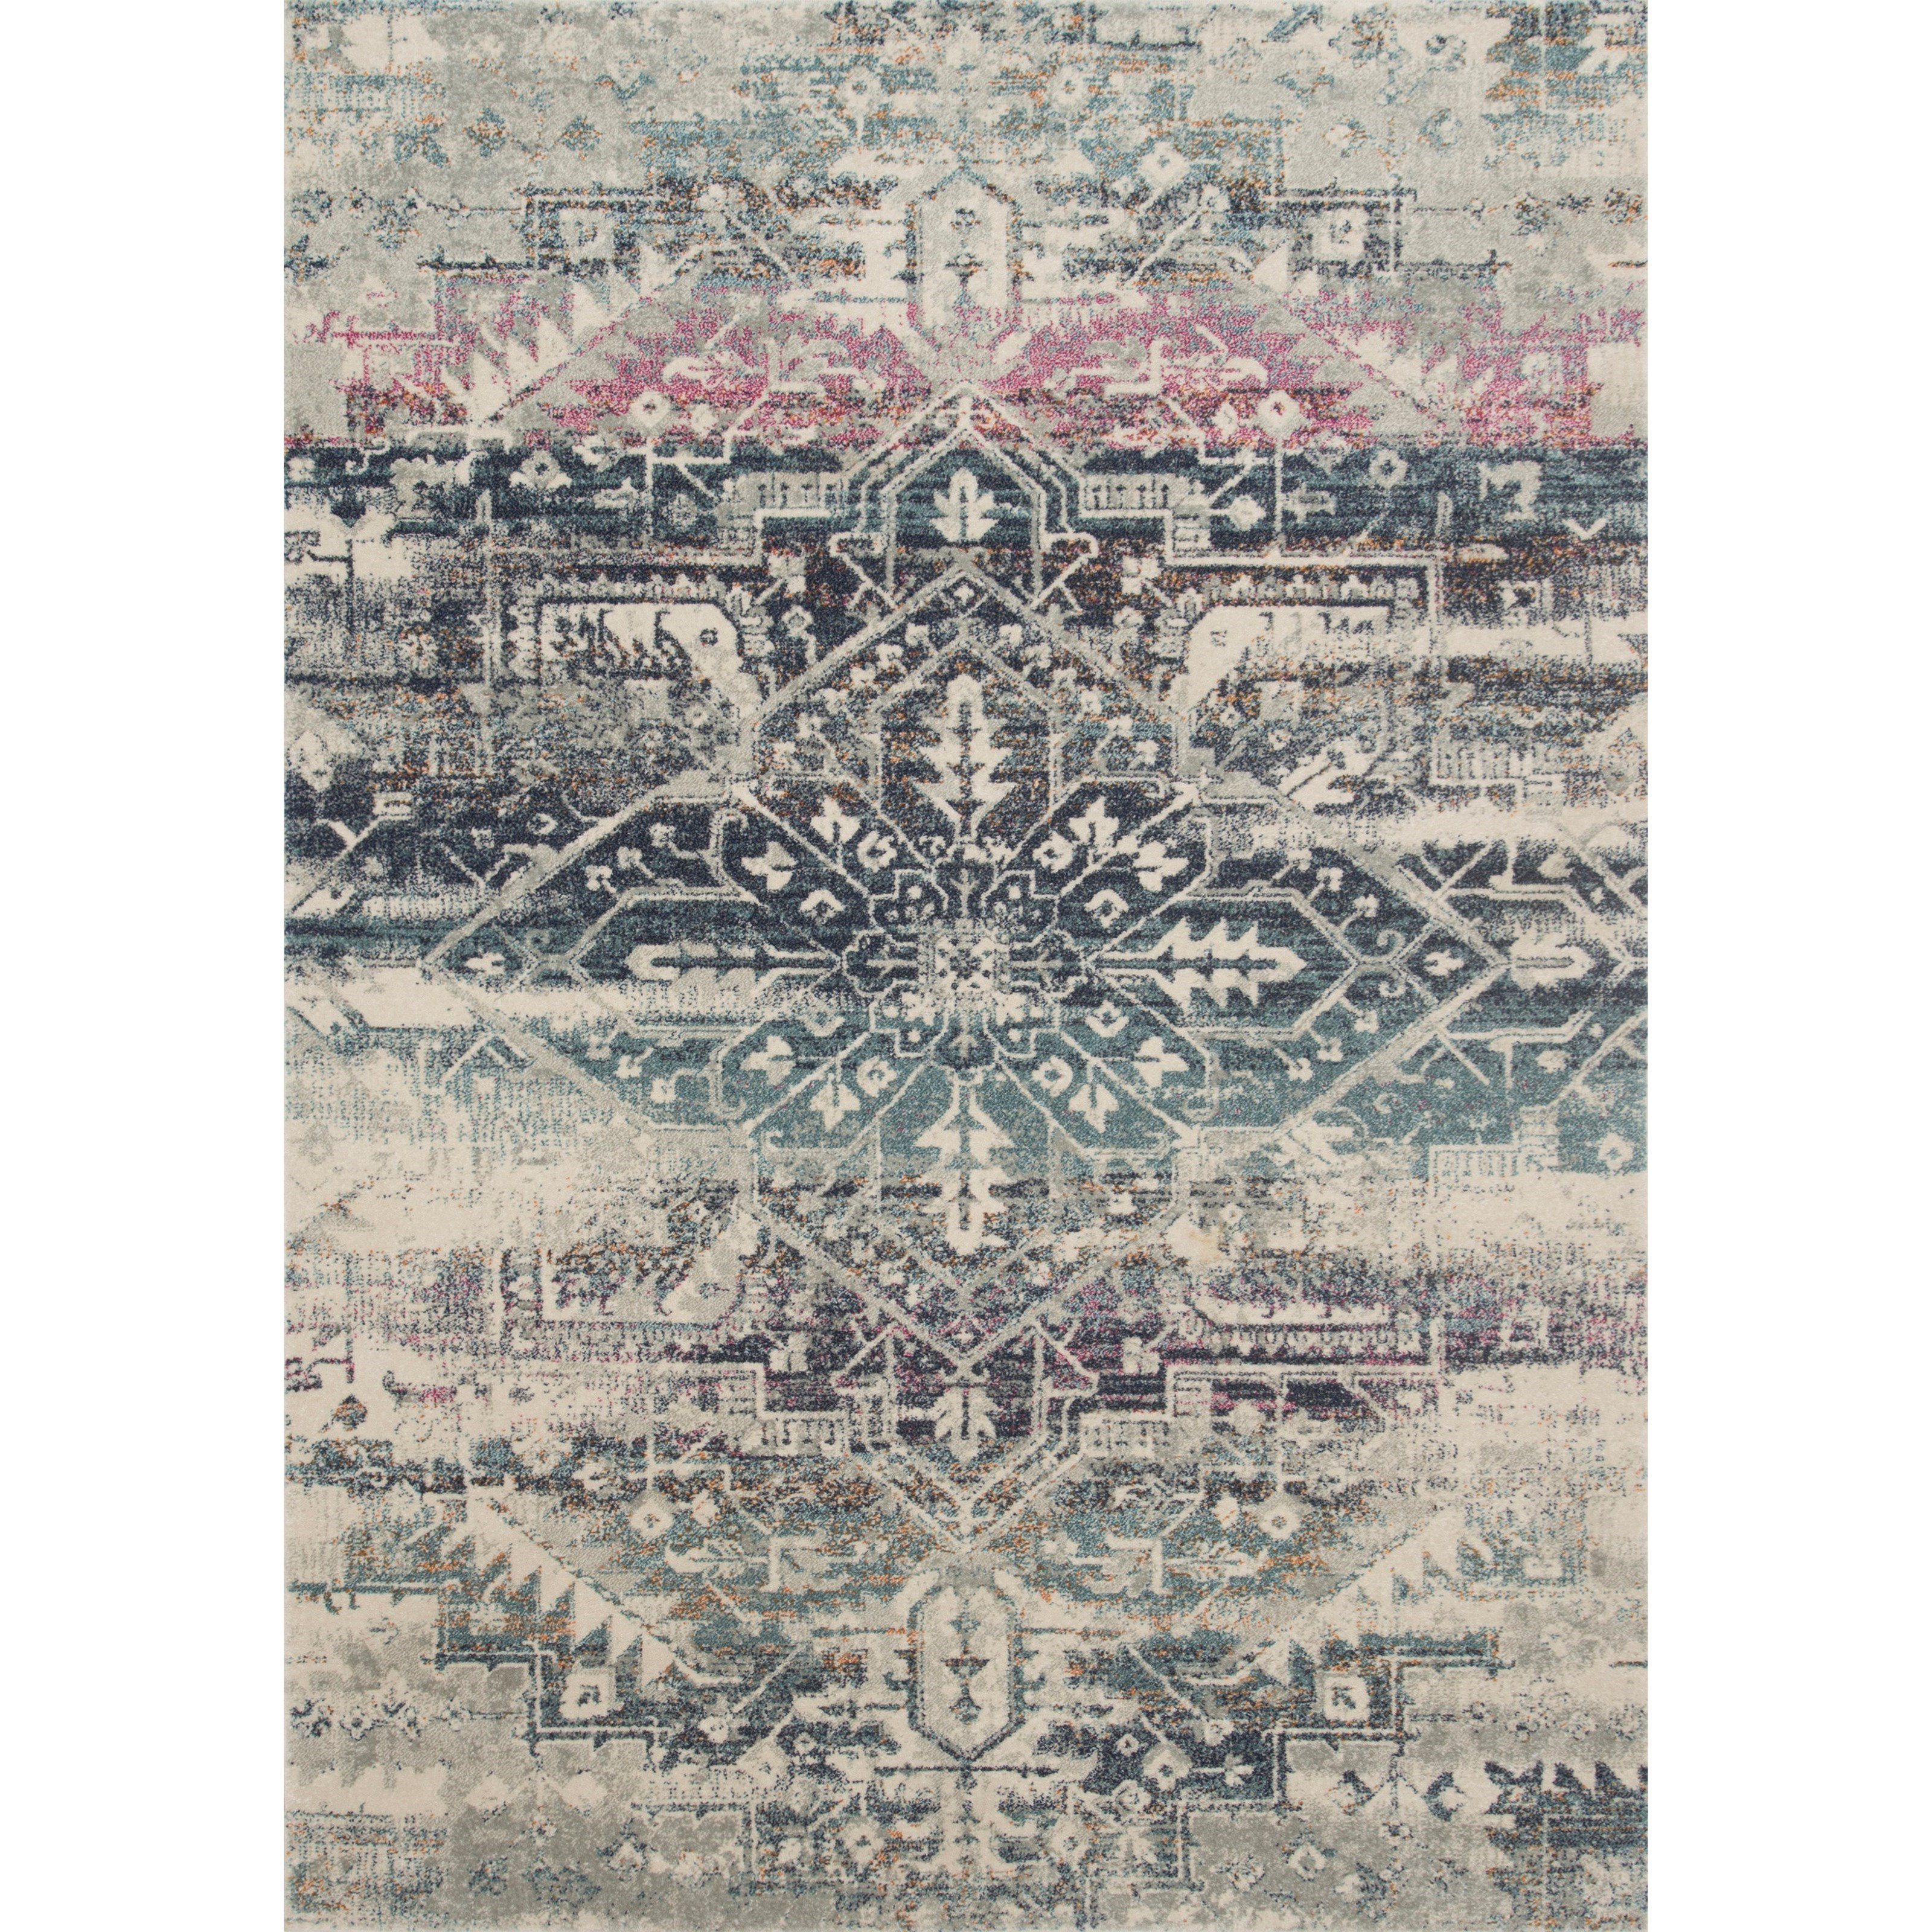 "Zehla 1'6"" x 1'6""  Midnight / Multi Rug by Loloi Rugs at Belfort Furniture"